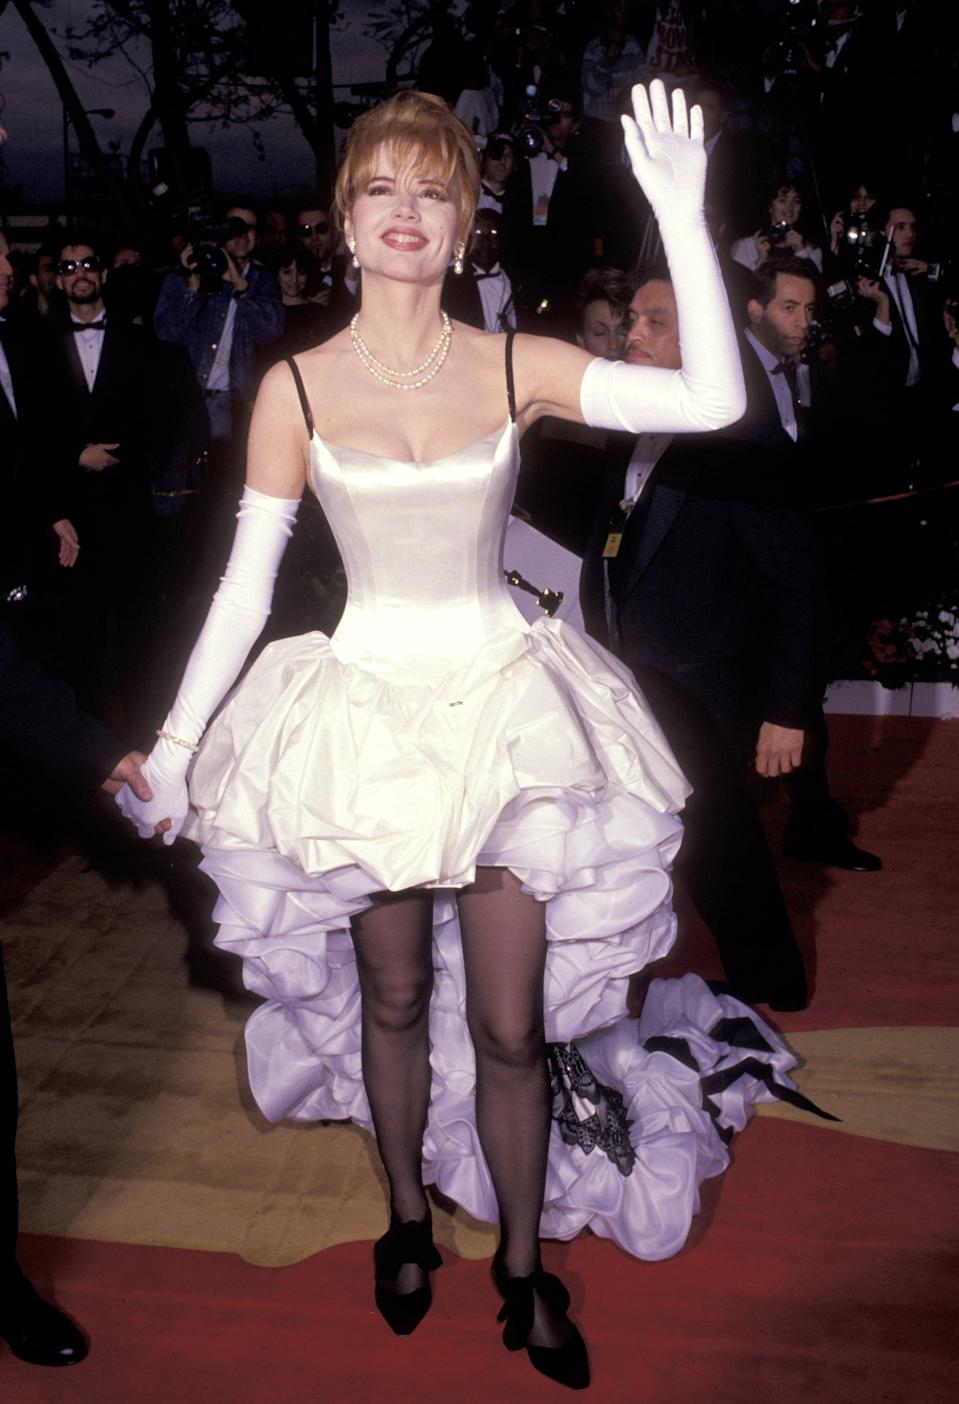 <p>Geena Davis gave us a '90s princess vibes at the 64th Academy Awards with a long ruffly dress train. The <strong>Thelma and Louise</strong> actress complemented her outfit with pearls, sheer tights, white gloves, and whimsical black shoes for a glam-punk look.</p>